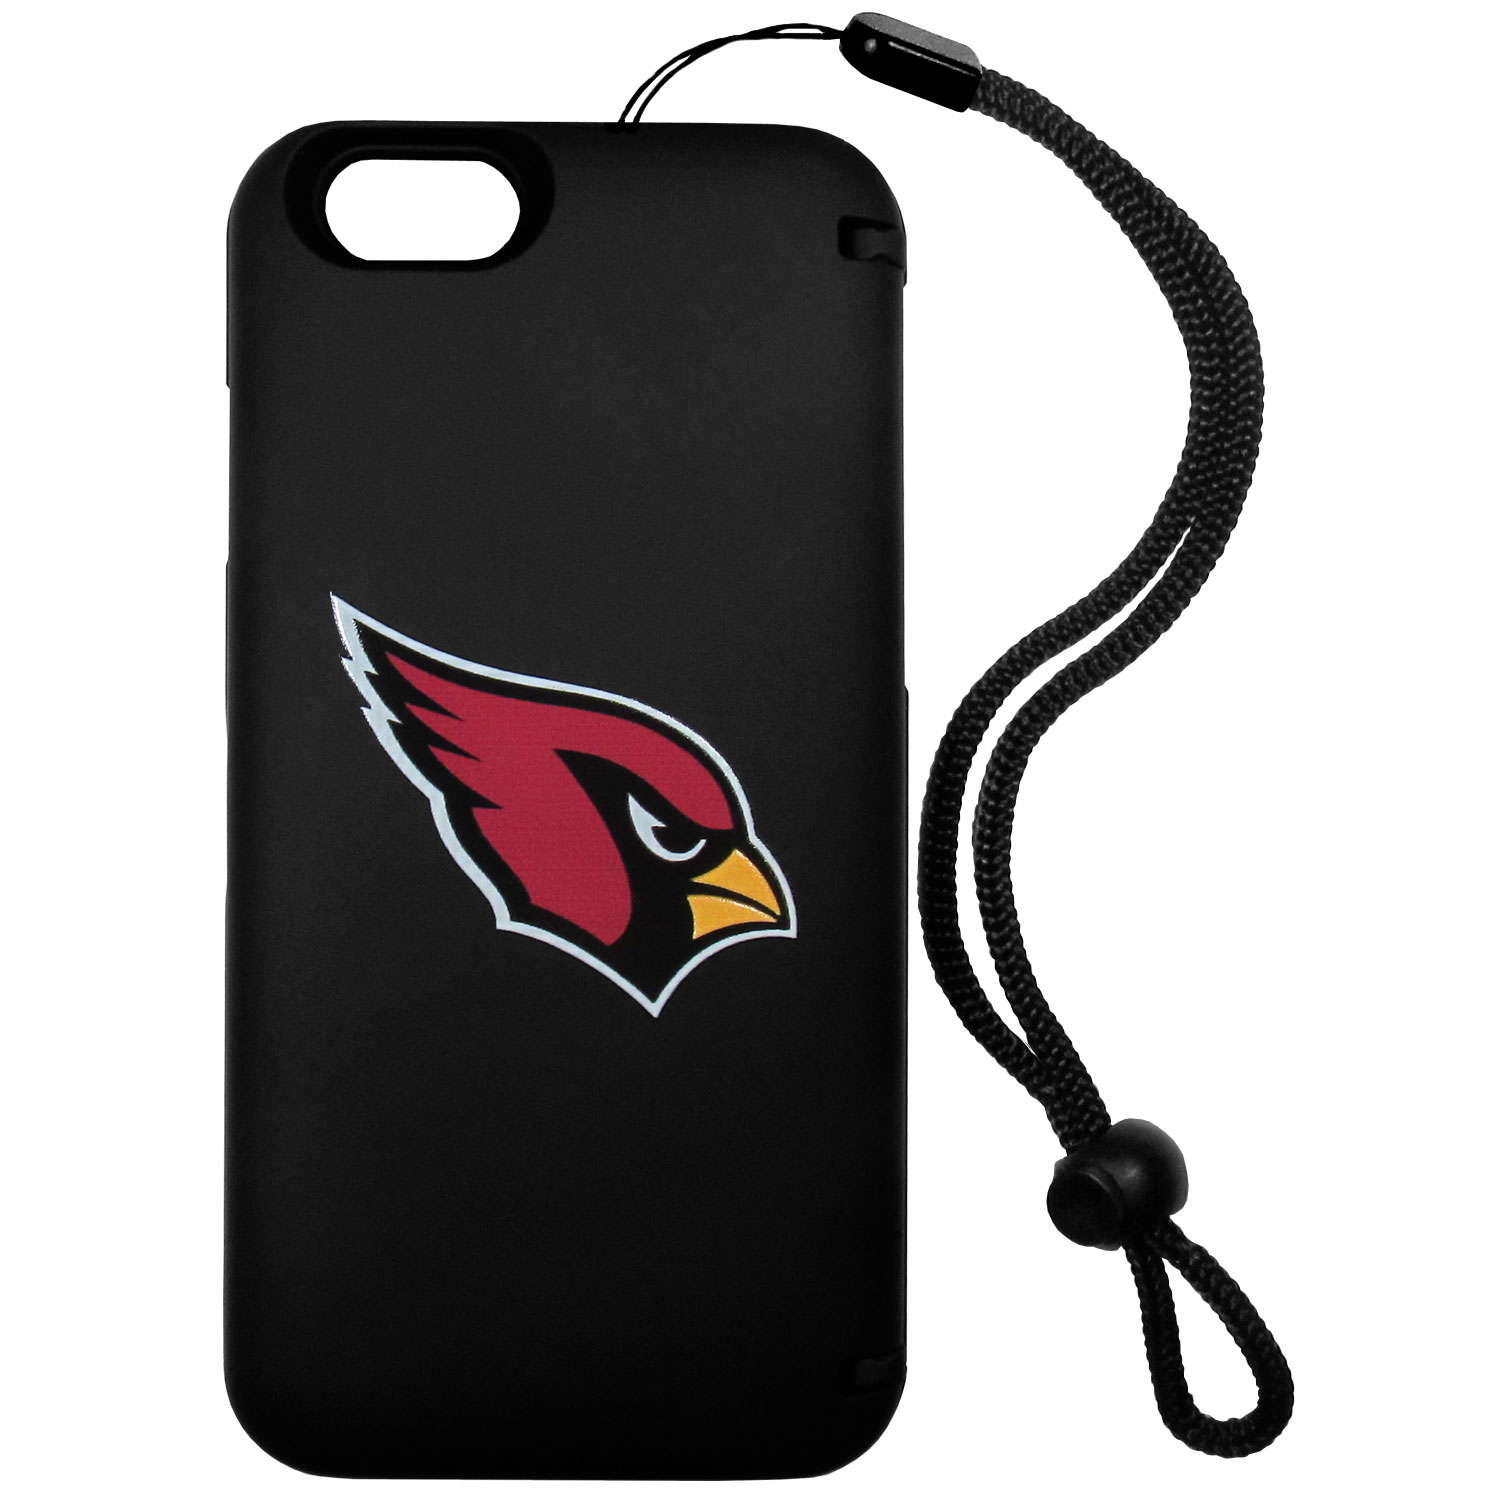 Arizona Cardinals iPhone 6 Everything Case - This case really does have everything but the kitchen sink! The hidden compartment lets you keep your cards, money and tickets to the big game safe and secure and has a compact mirror so you can make sure your game face is ready to go. It also comes with a kickstand to make chatting and watching videos a breeze. The wrist strap allows you to travel with ease with your everything case. If that's not enough, it also comes with the Arizona Cardinals logo printed in expert detail on the front.